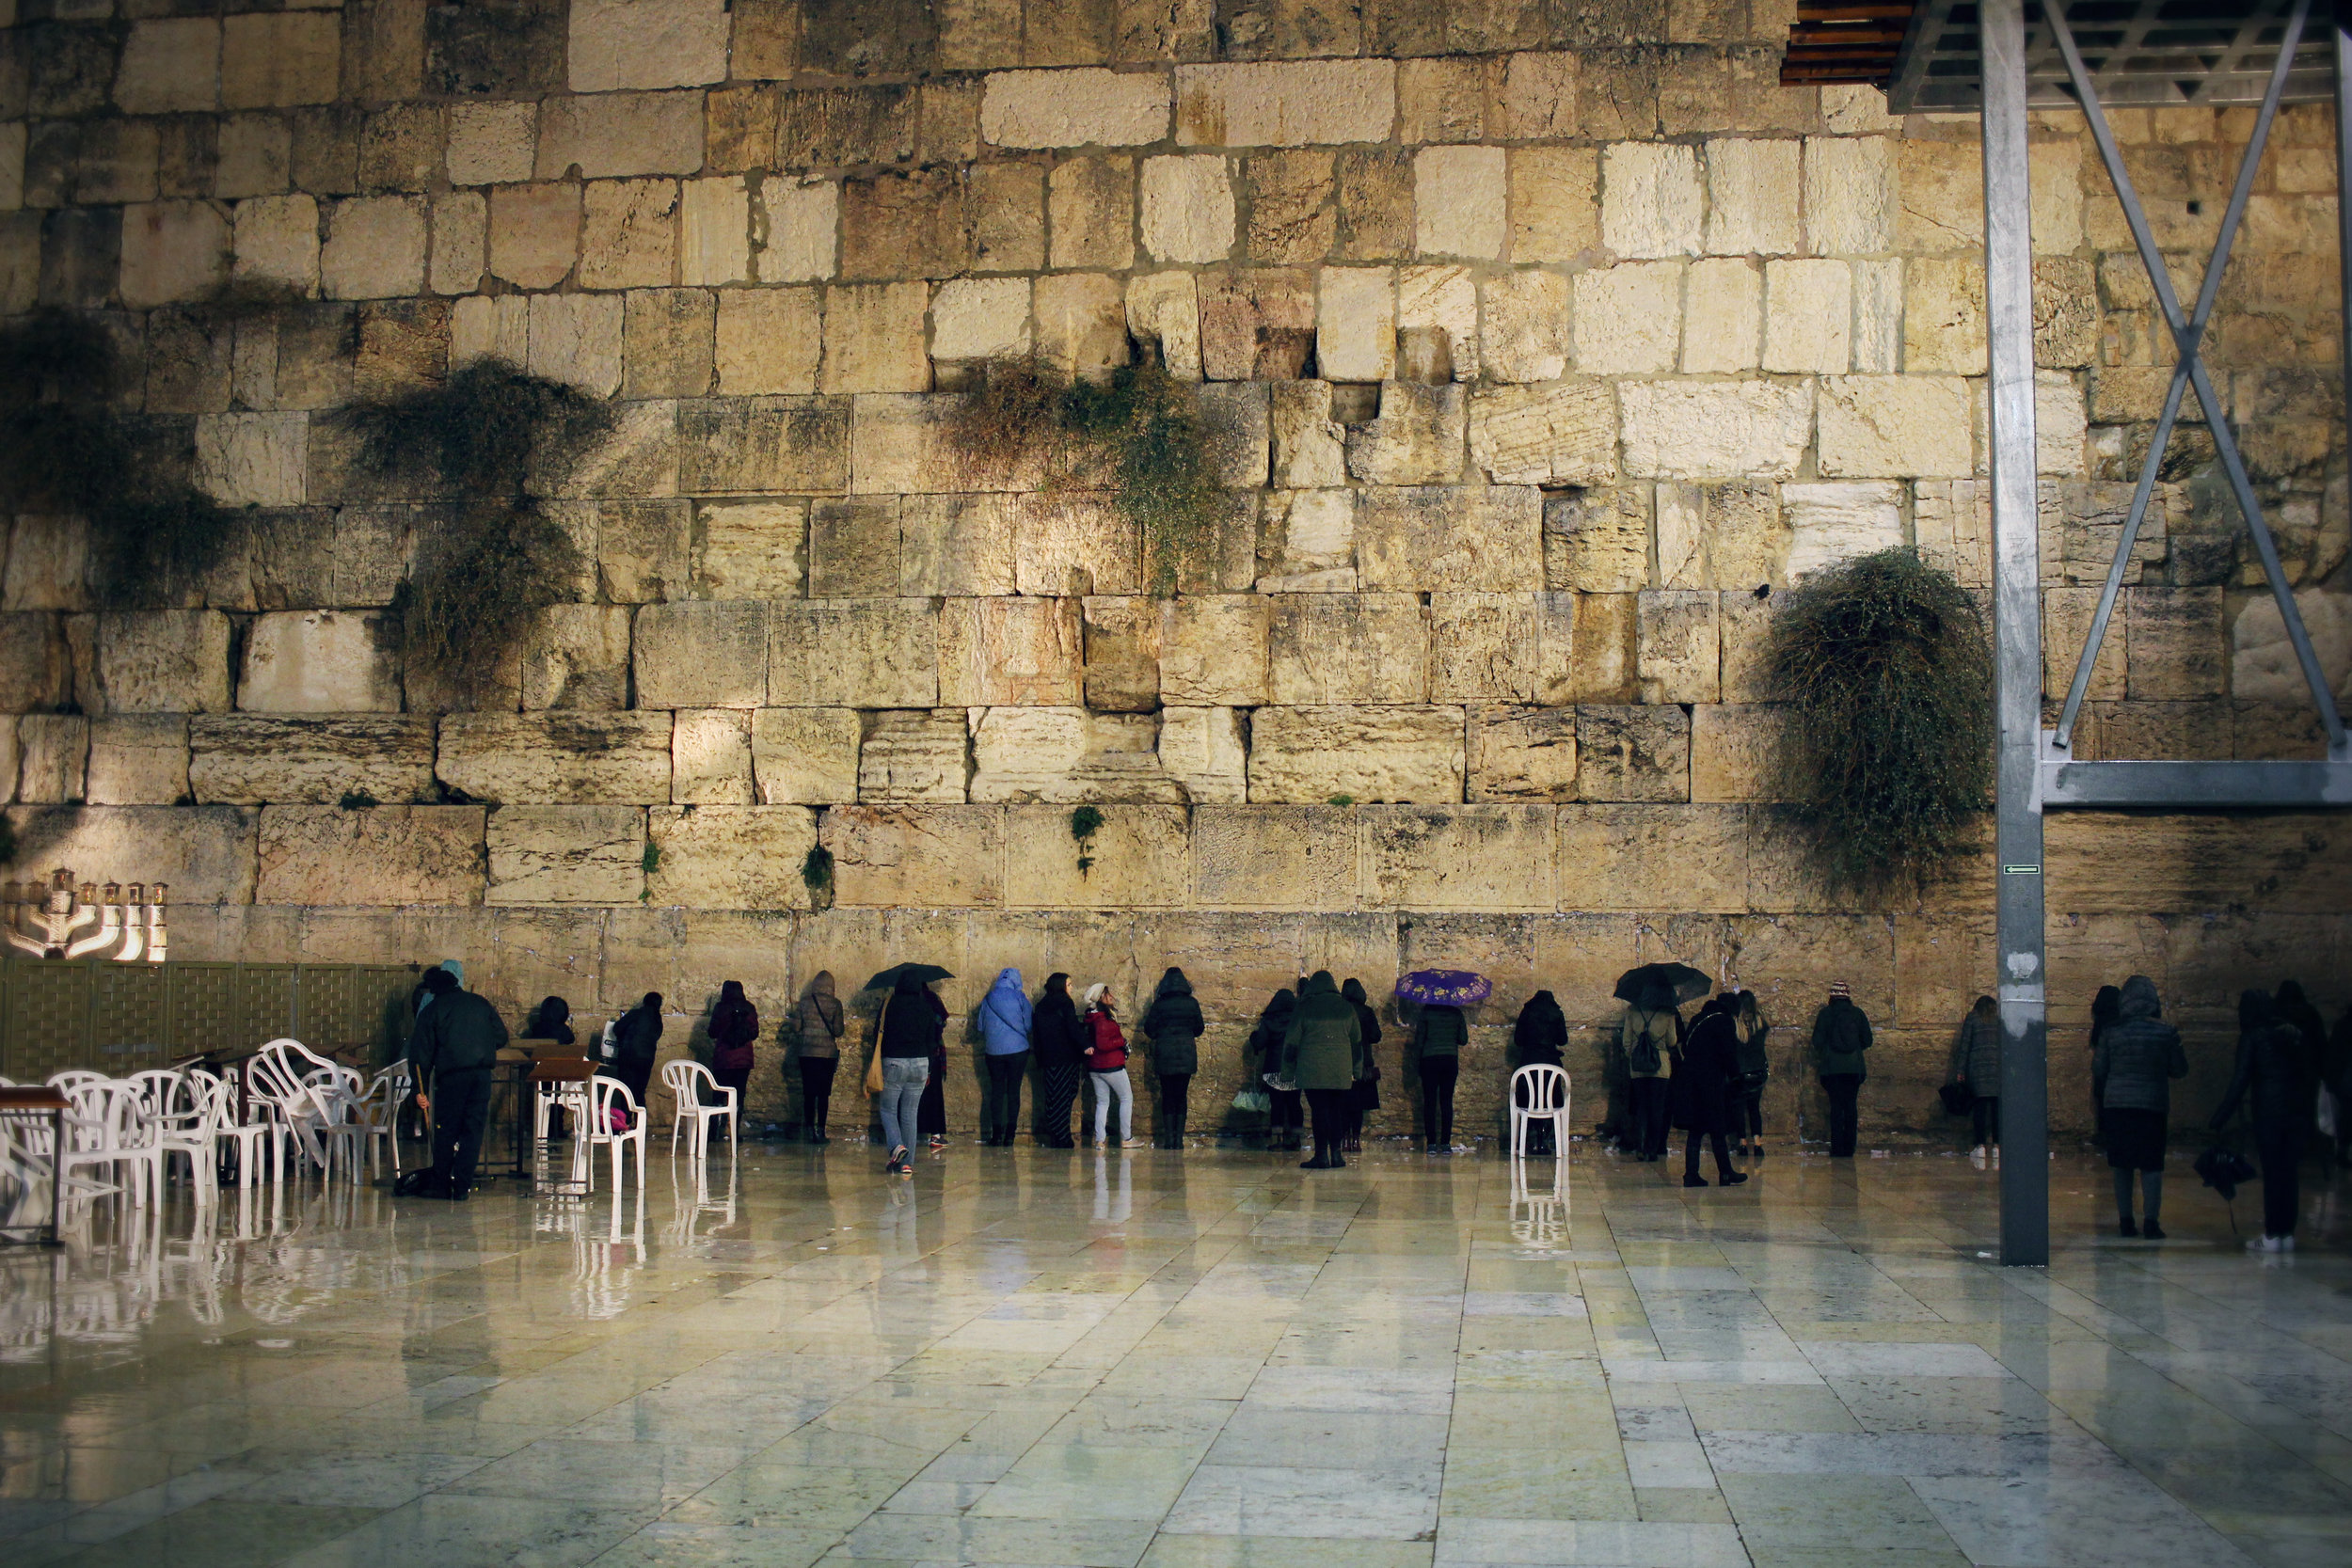 Western Wall in Old City of Jerusalem, Israel. Travel photography by Geena Matuson @geenamatuson #thegirlmirage.